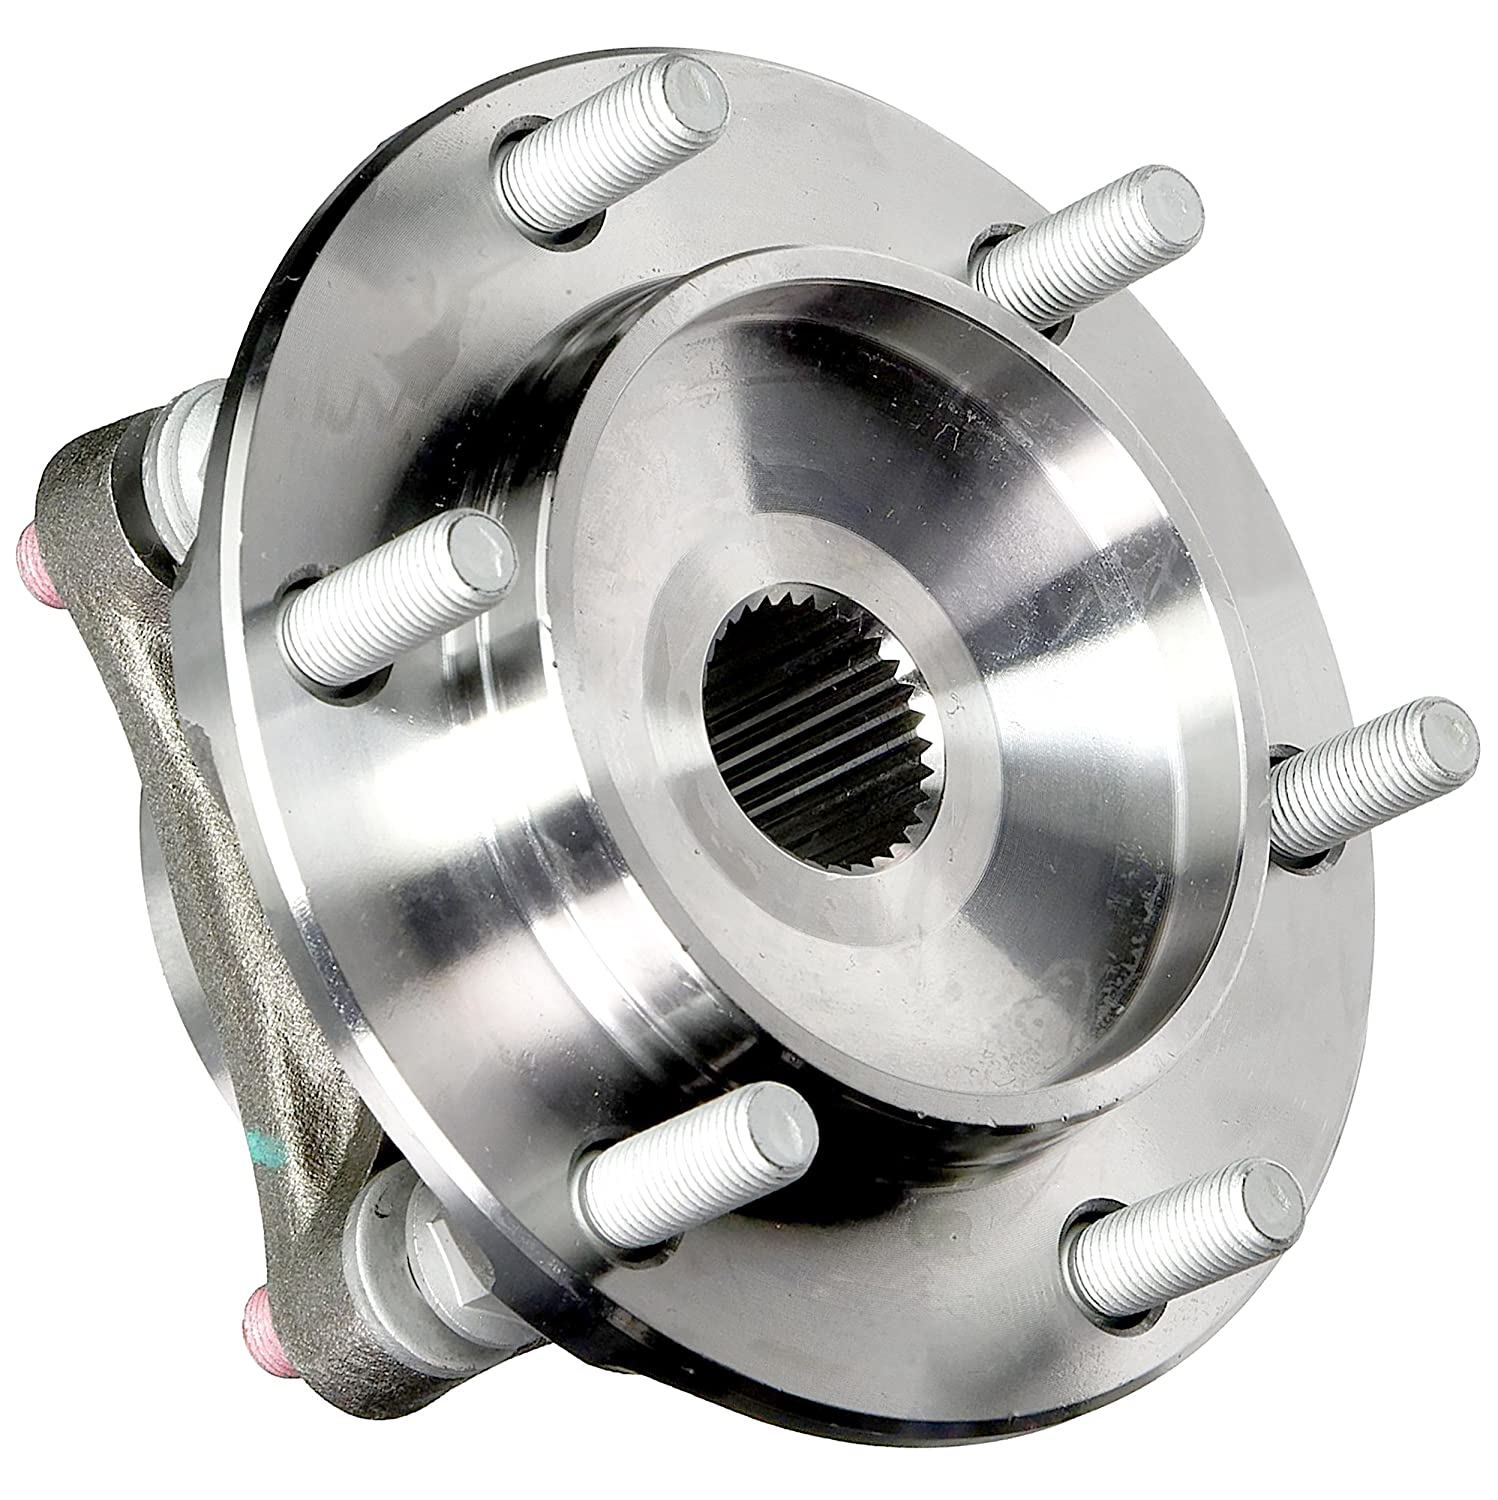 APDTY 515040 Wheel Hub Bearing Complete Bolt On Assembly w/Studs Fits 4WD  or AWD Front Left or Right 2010-2015 Lexus GX460 2003-2009 GX470 2003-2015